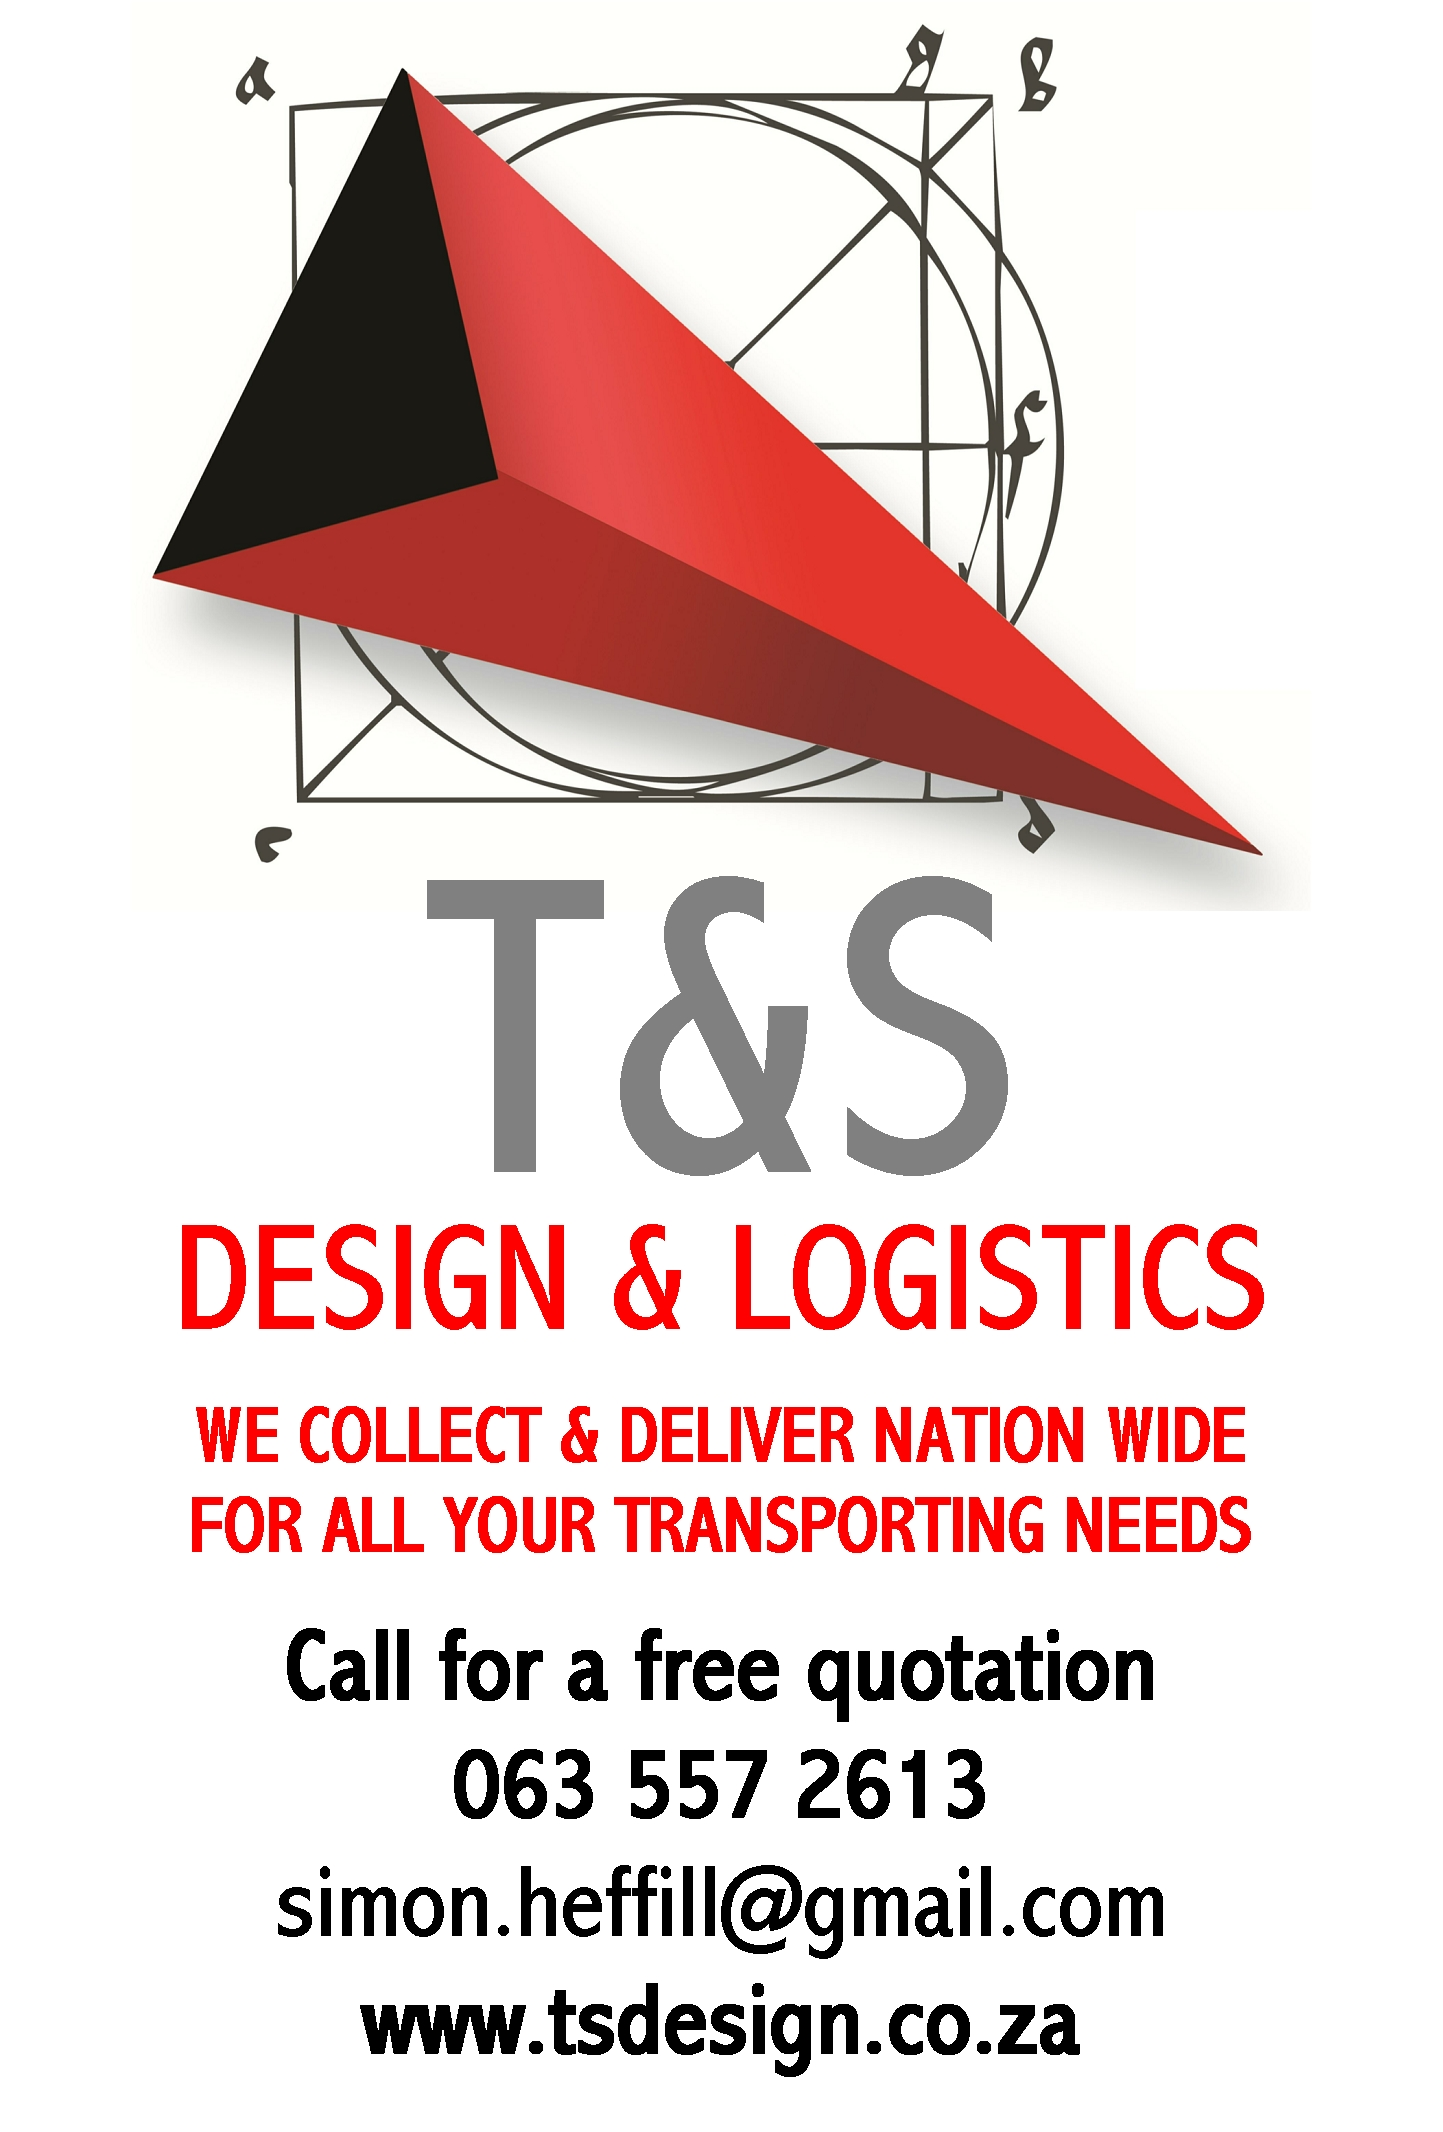 T&S LOGISTICS, TRANSPORTATION, DELIVERY & COLLECTION